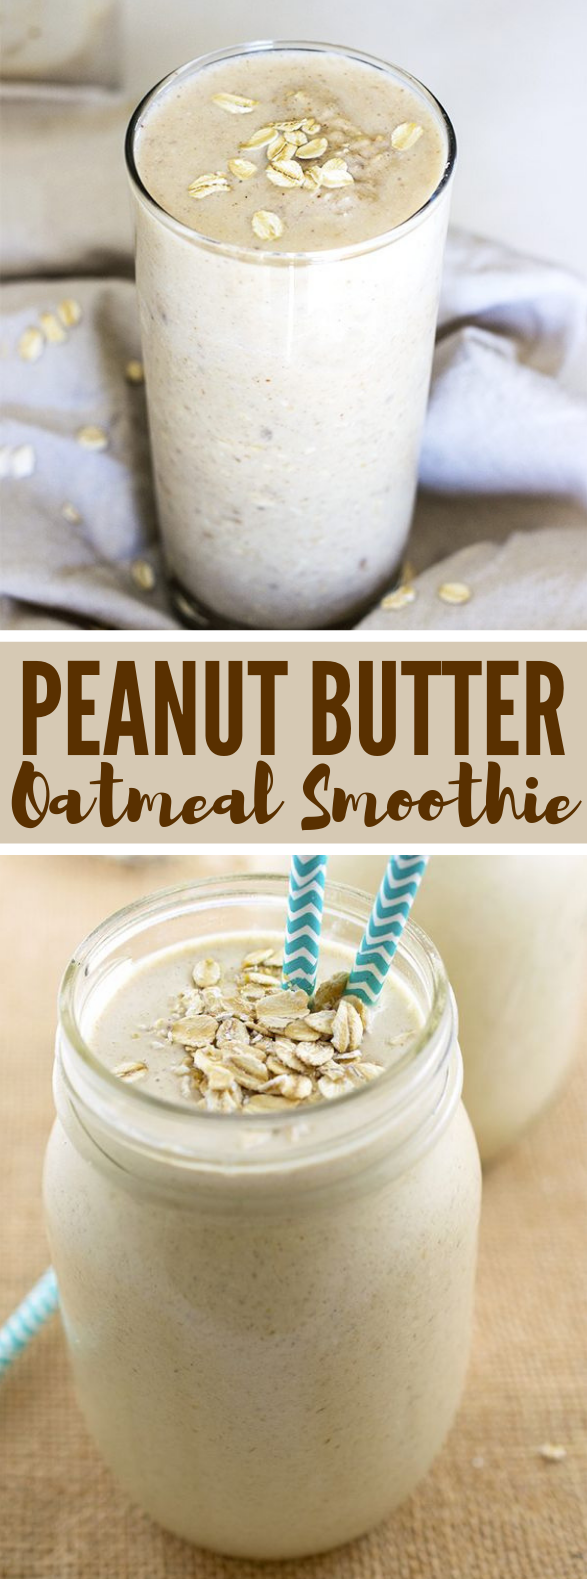 Peanut Butter Oatmeal Smoothie #healthydrink #breakfast